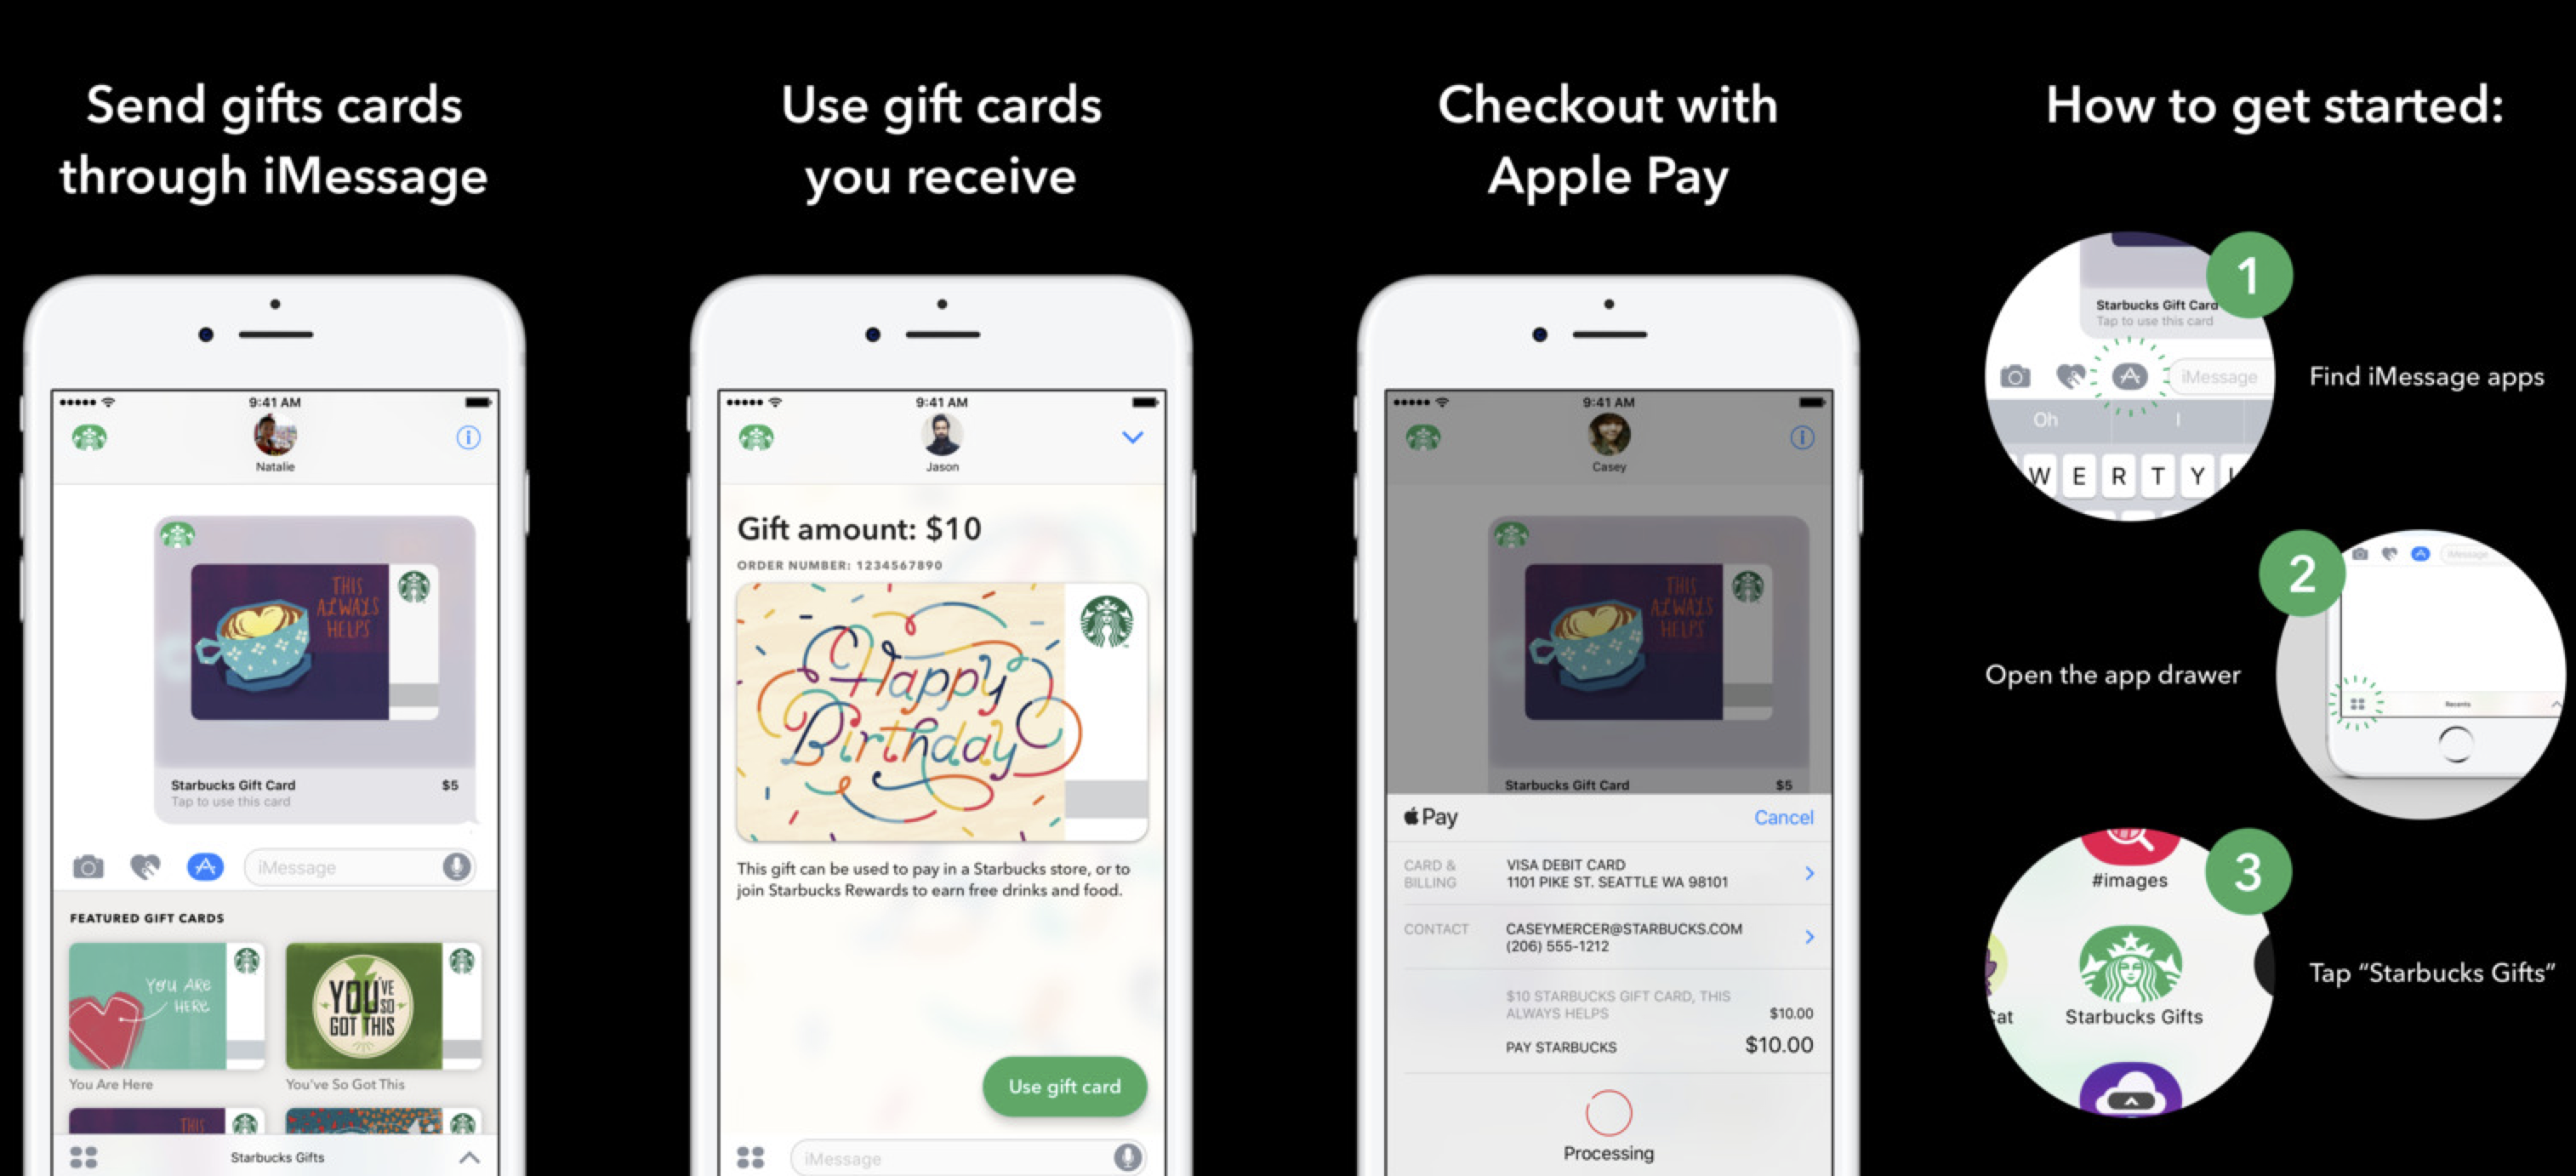 Starbucks For Iphone Adds Imessage App For Sending Gift Cards With Apple Pay More 9to5mac